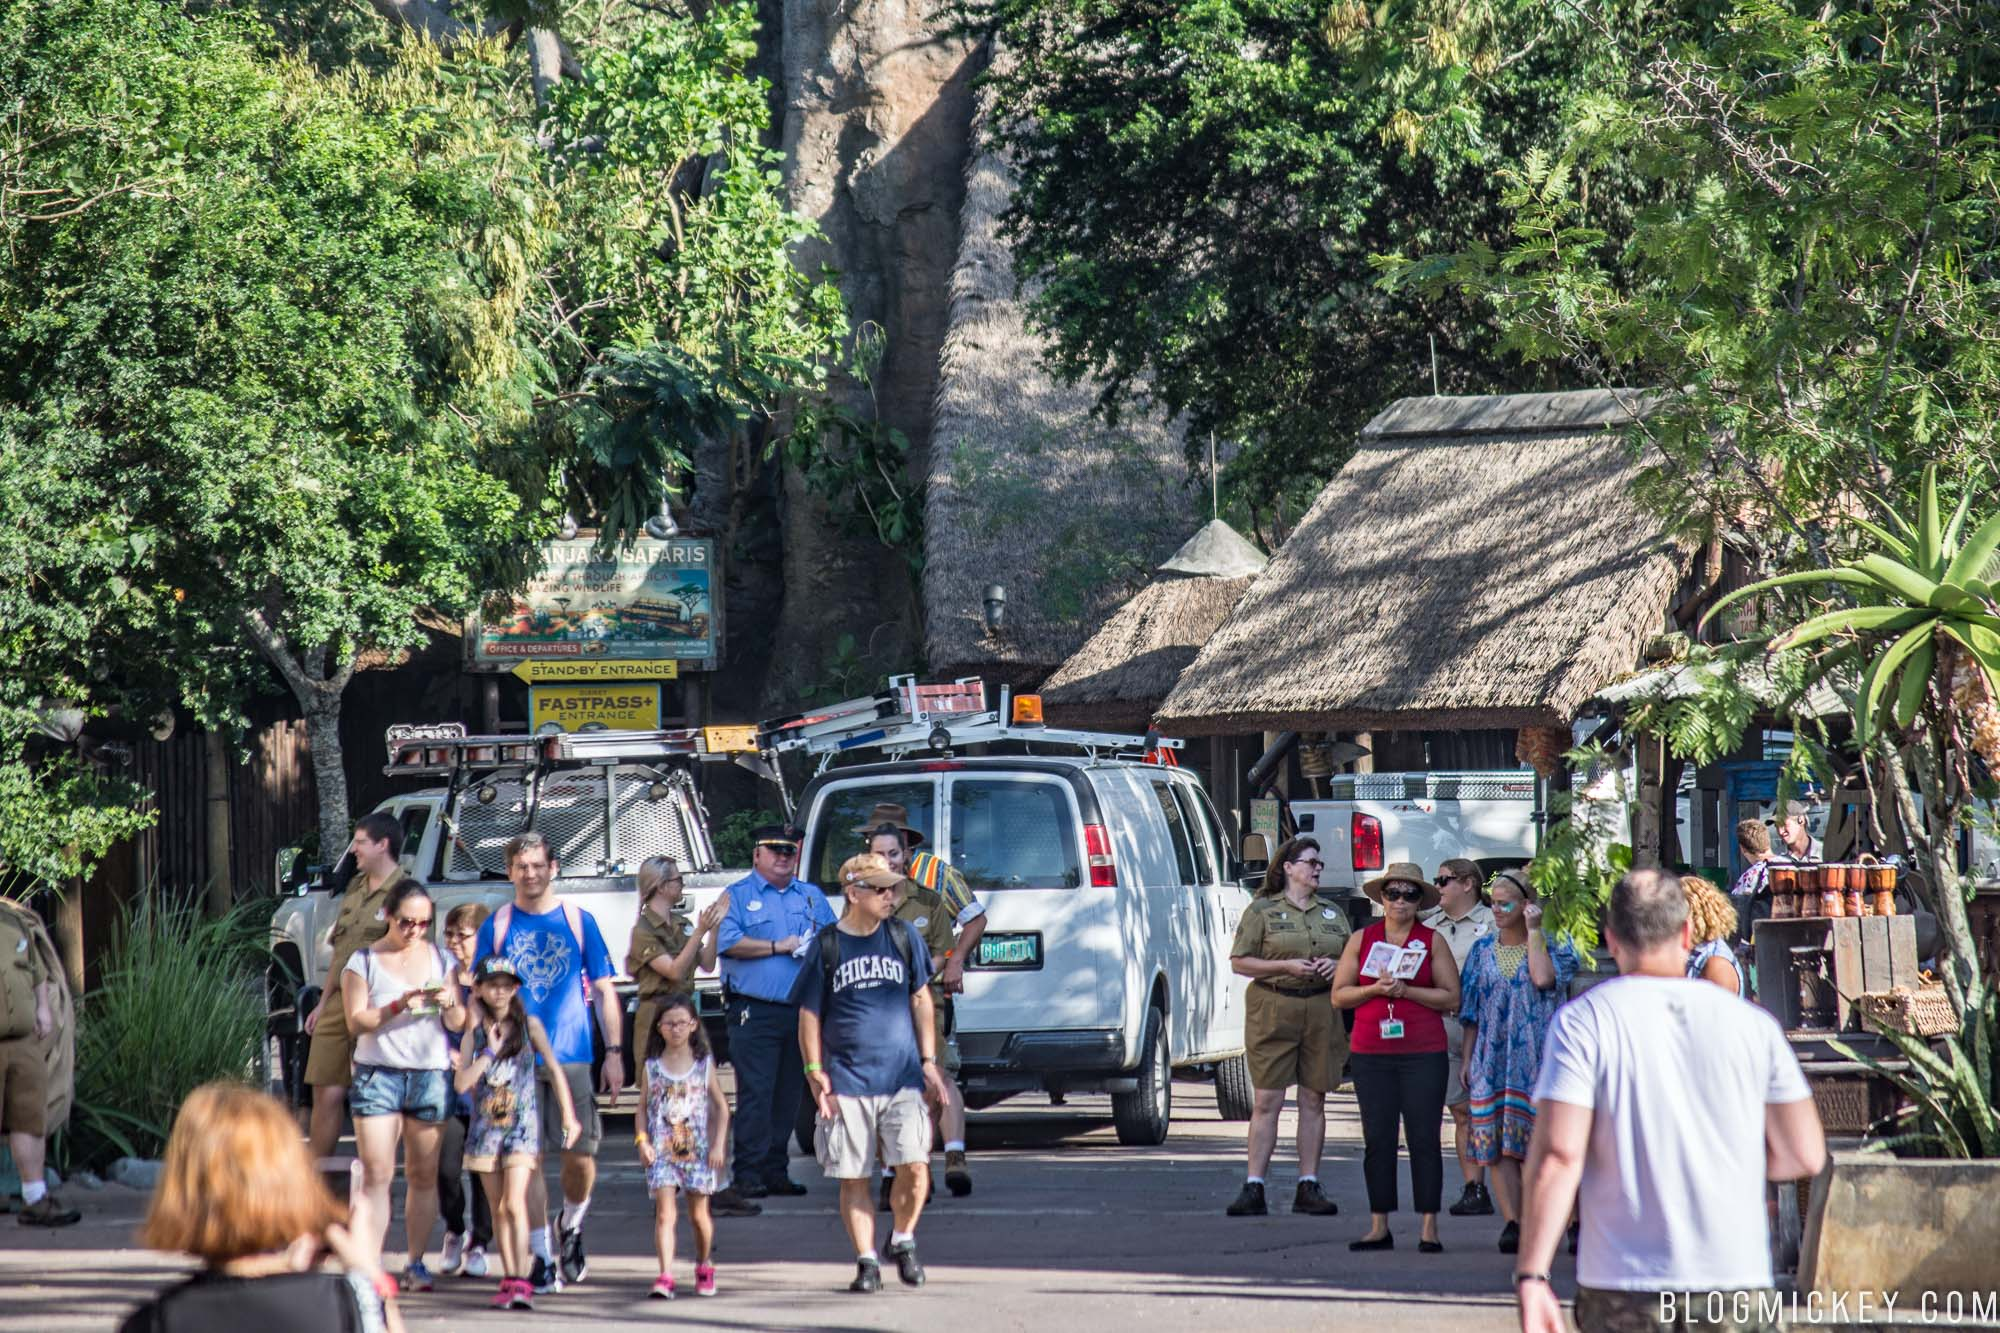 Kali River Rapids Closed Other Operational Impacts Due To Hurricane Irma At Disneys Animal Kingdom